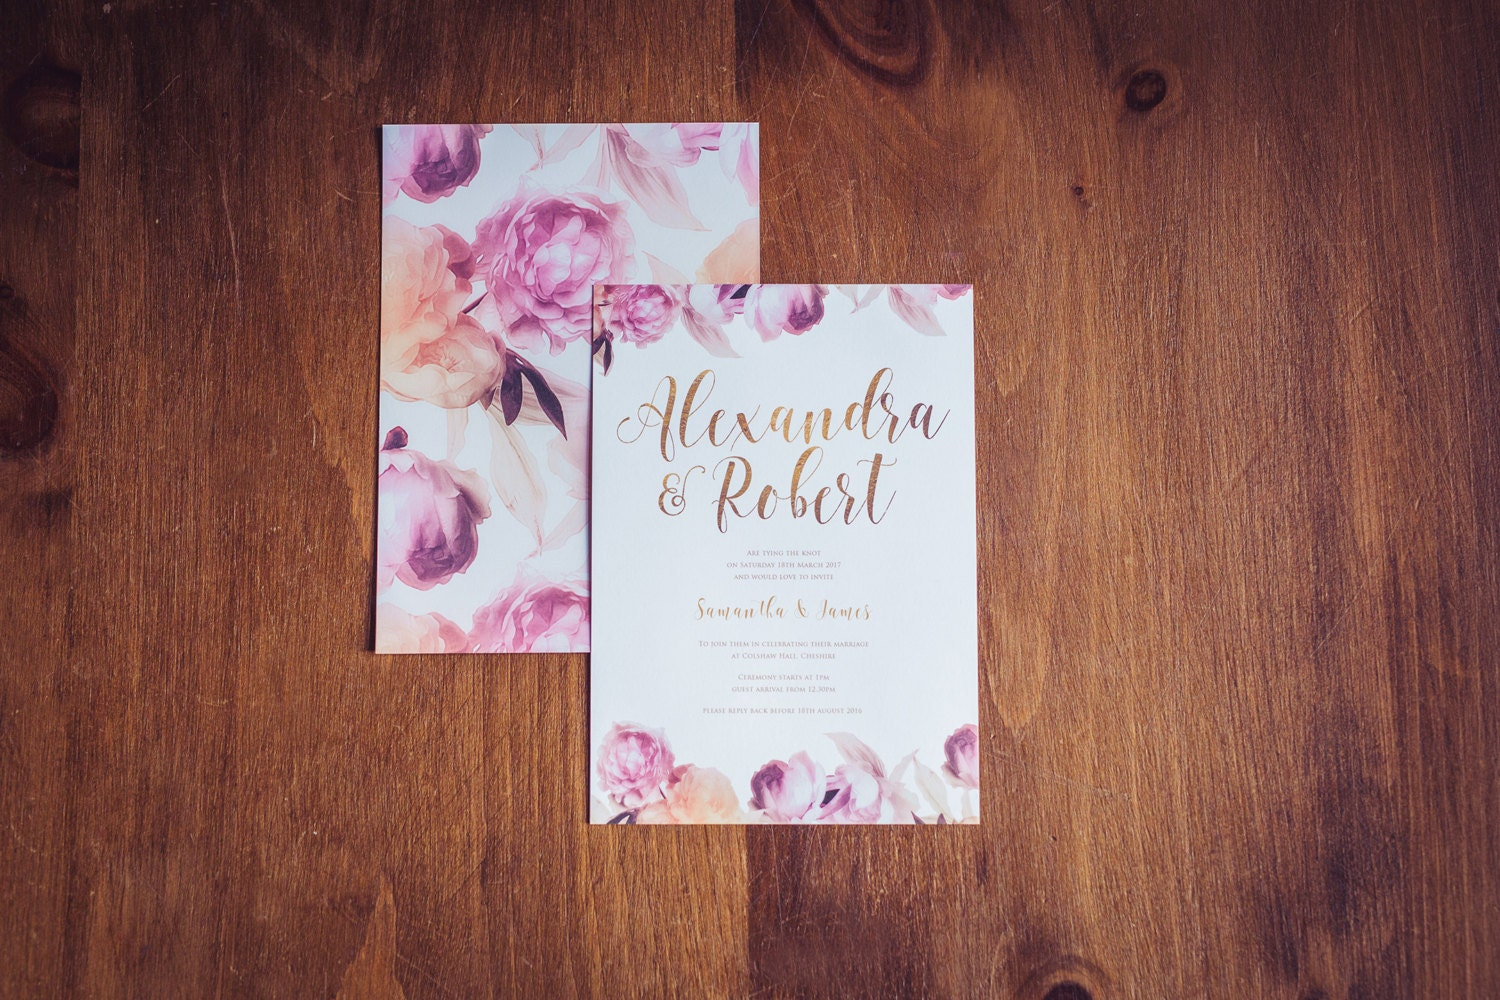 Dreamy Florals Wedding Invitation  Pink Blush Coral Cream Flowers  Bronze Font on Invitation  Simple Elegant Invitation Set